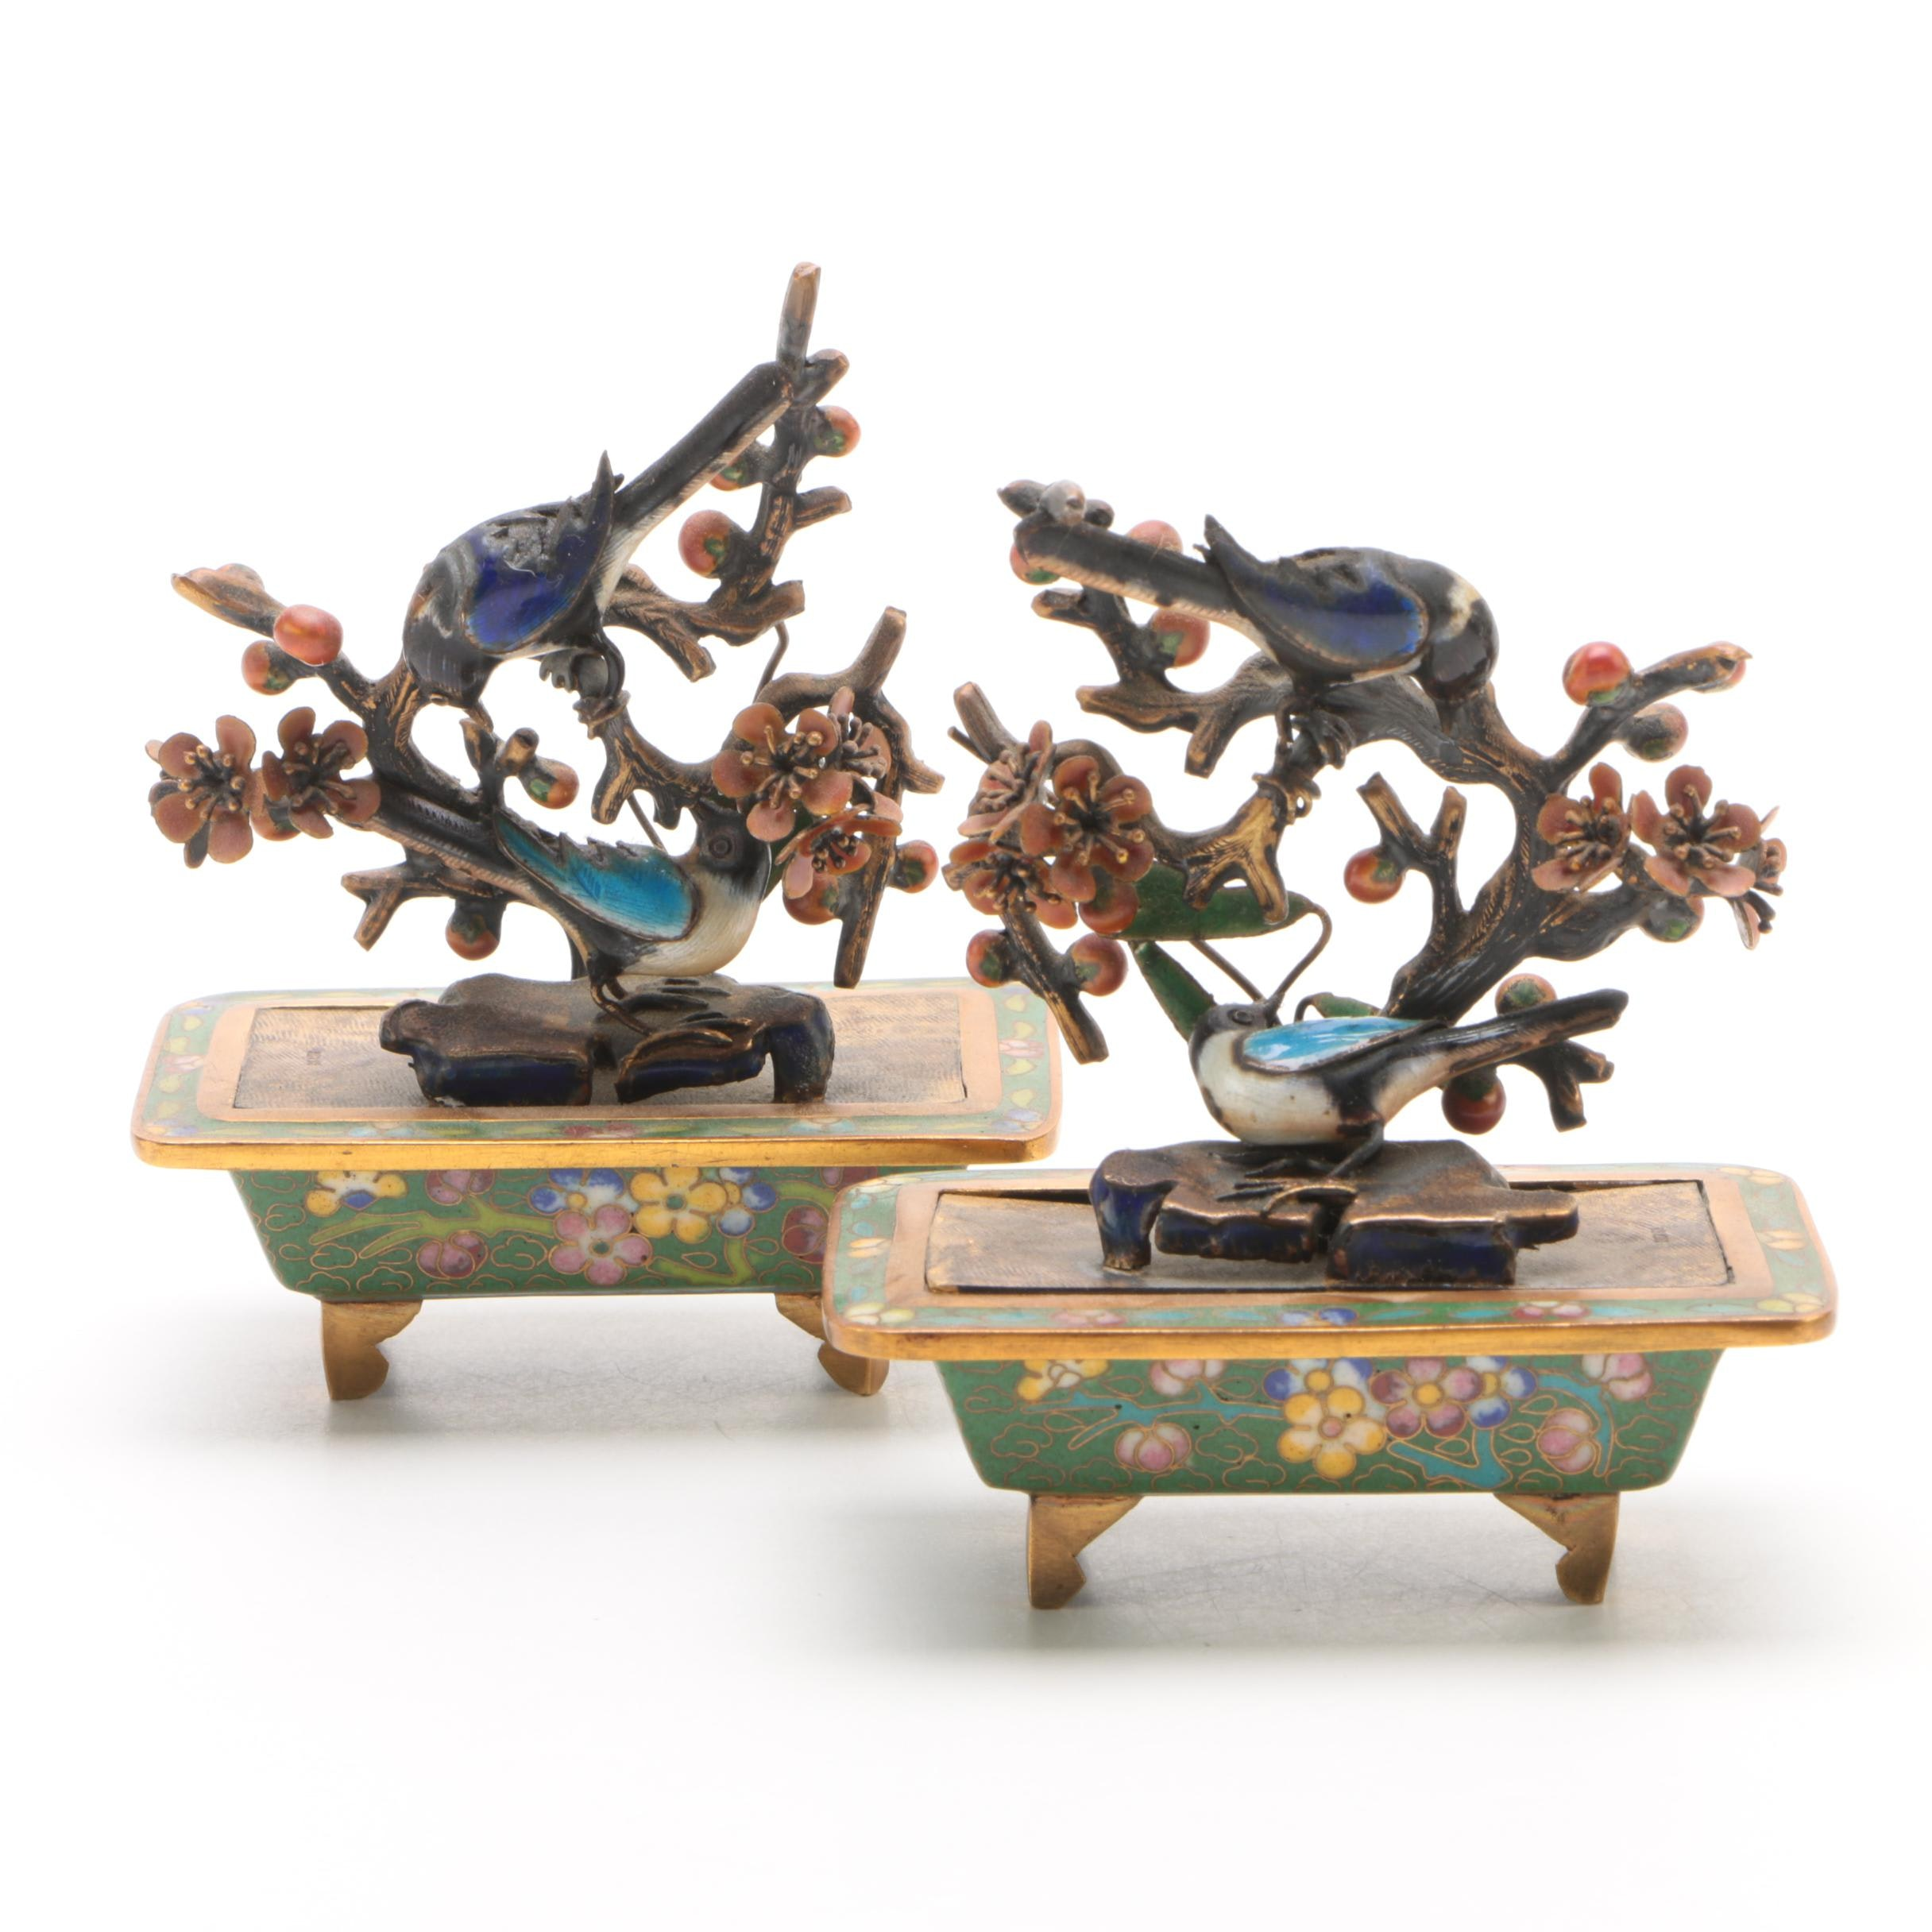 Enameled Cherry Blossom Trees Figurines with Birds and Cloisonné Bases